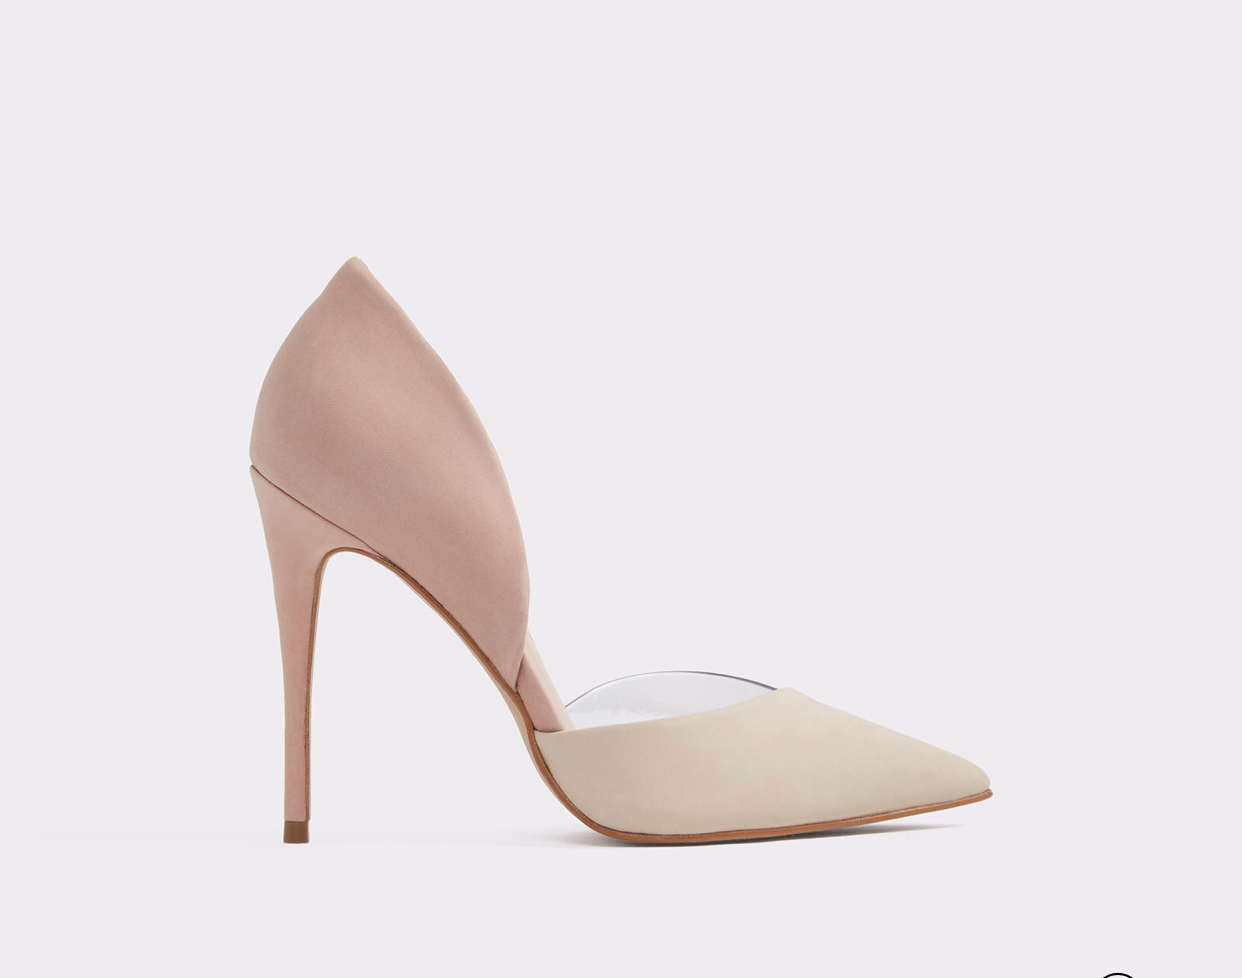 The Legiralia pump in Bone Nubuck. A modest heel to walk from garden to church -  Aldo